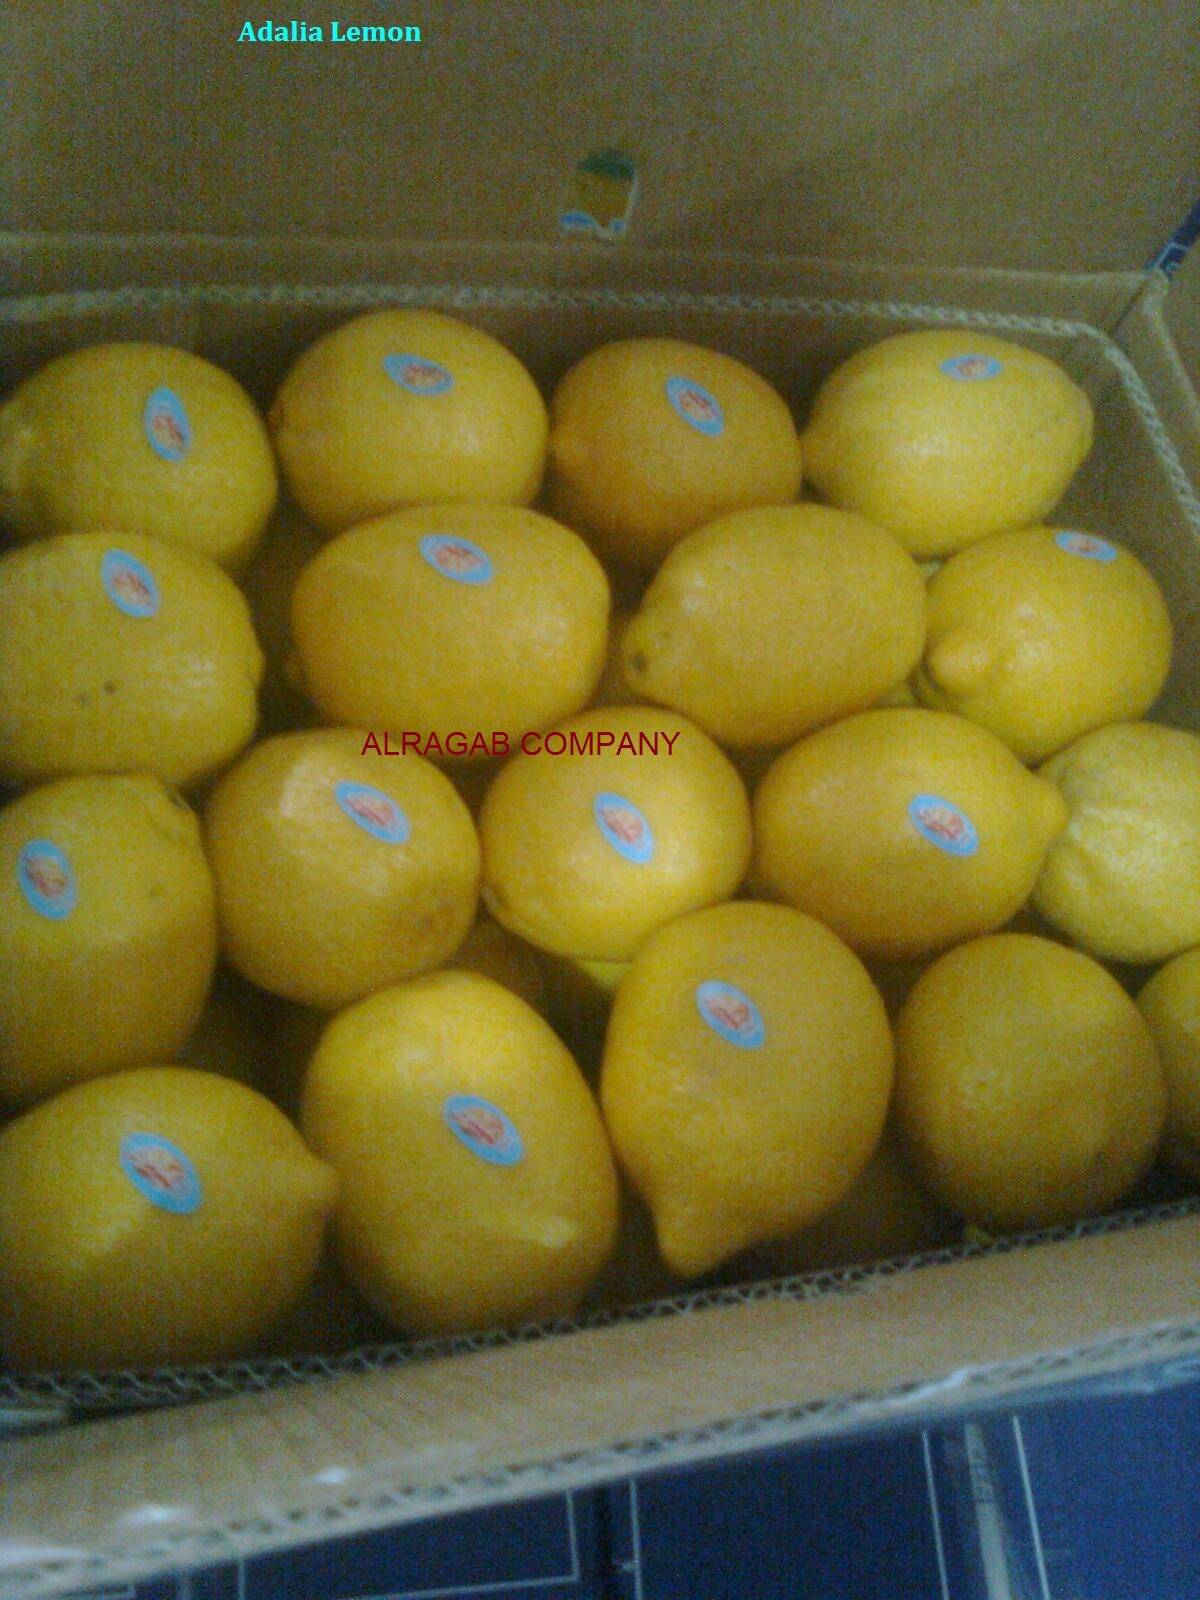 we offer fresh lemons